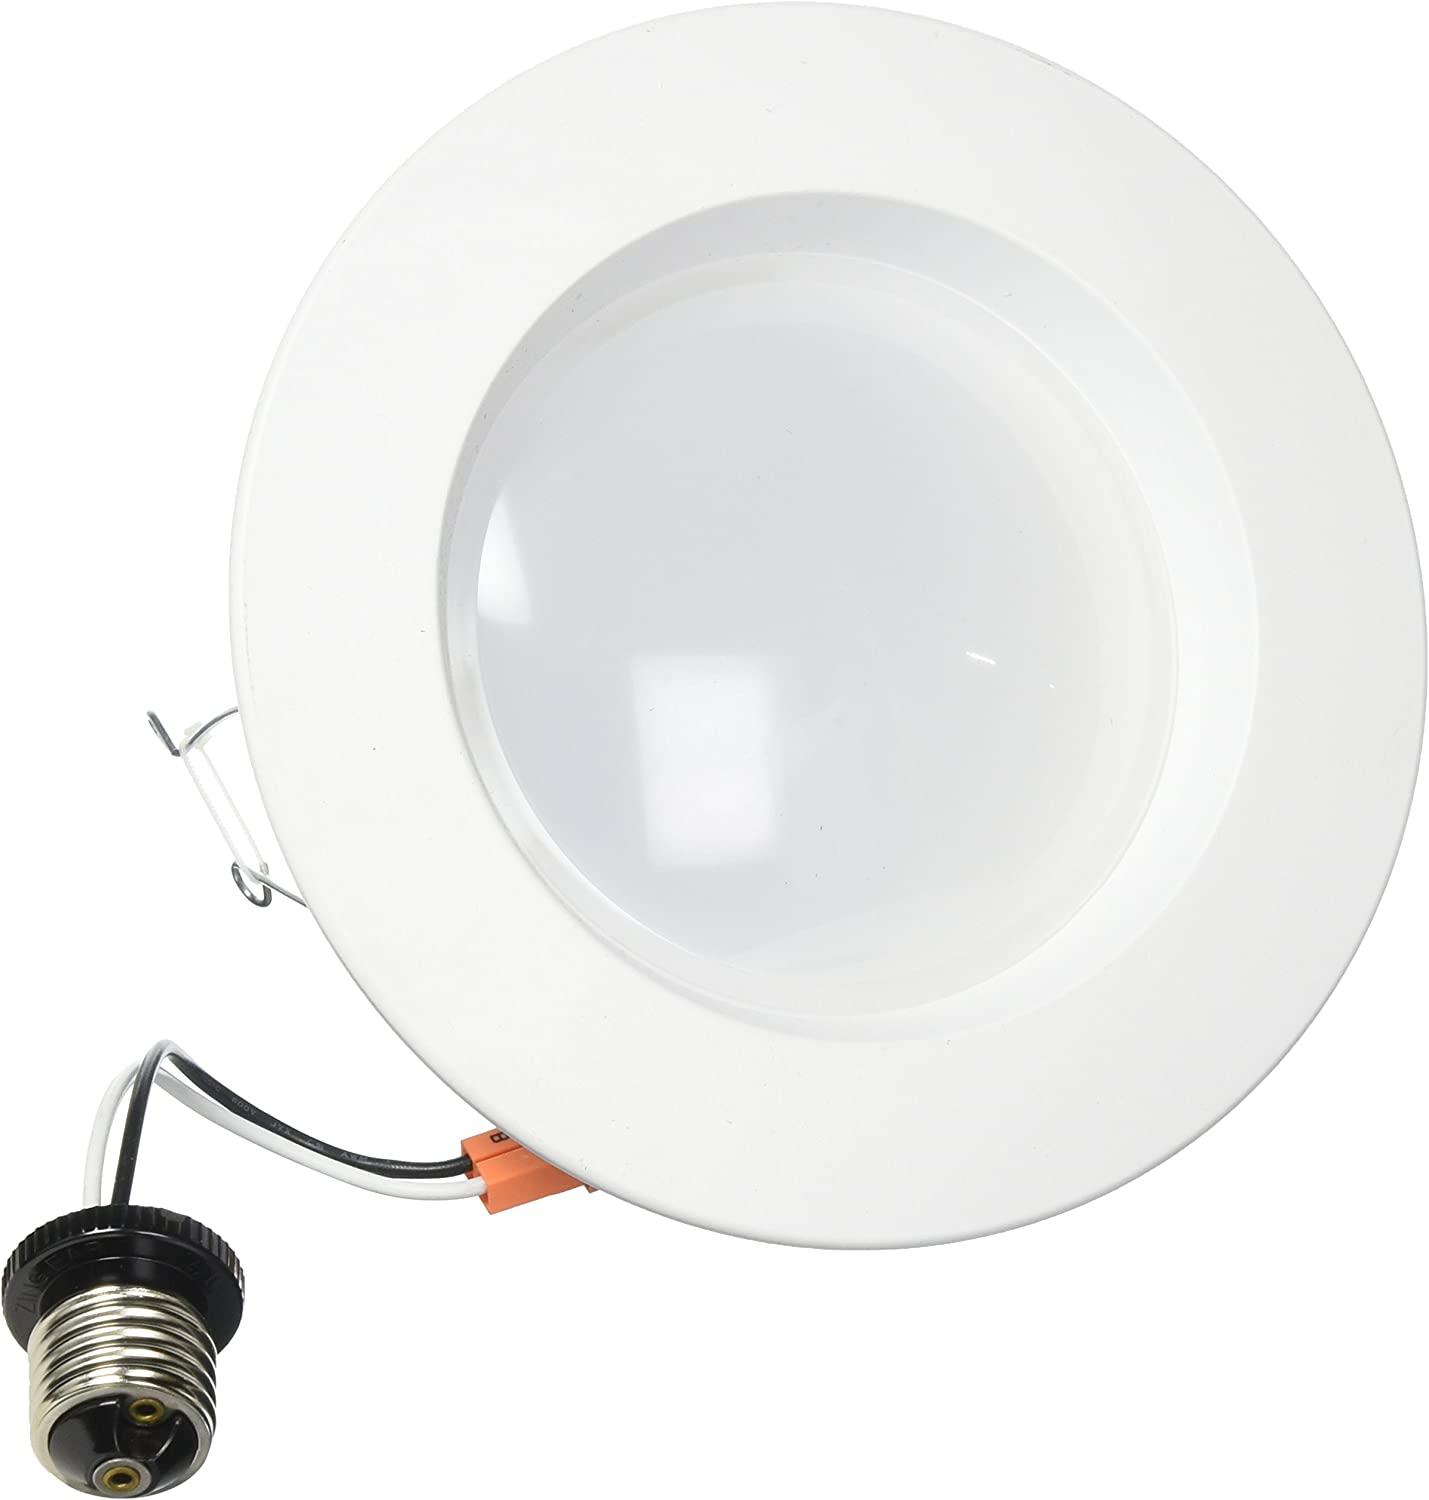 Feit LEDR56/827 1290 Lumen 2700K 5 & 6 Inch Dimmable Retrofit Kit - 120W EQUIVALENT, 17.2w